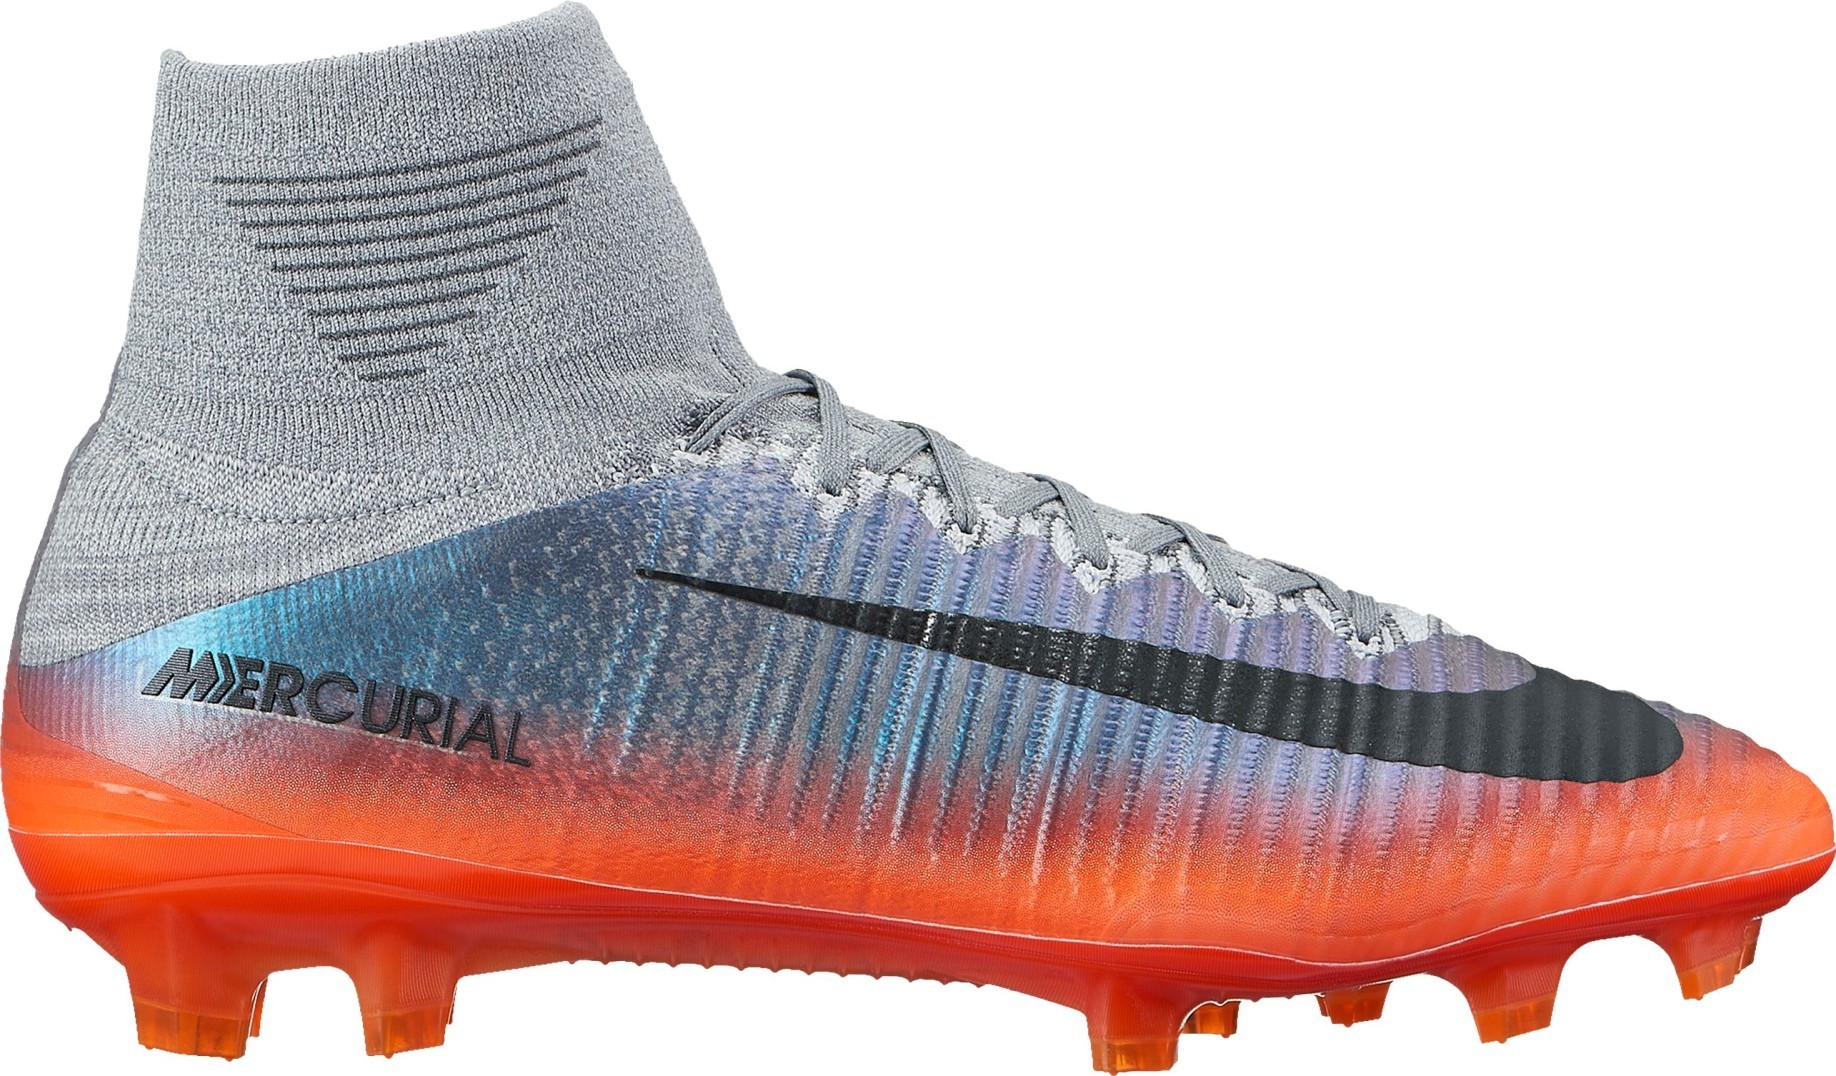 Football boots Nike Mercurial Superfly V CR7 FG Cool Grey colore Silver  Orange - Nike - SportIT.com 765684dd2e5